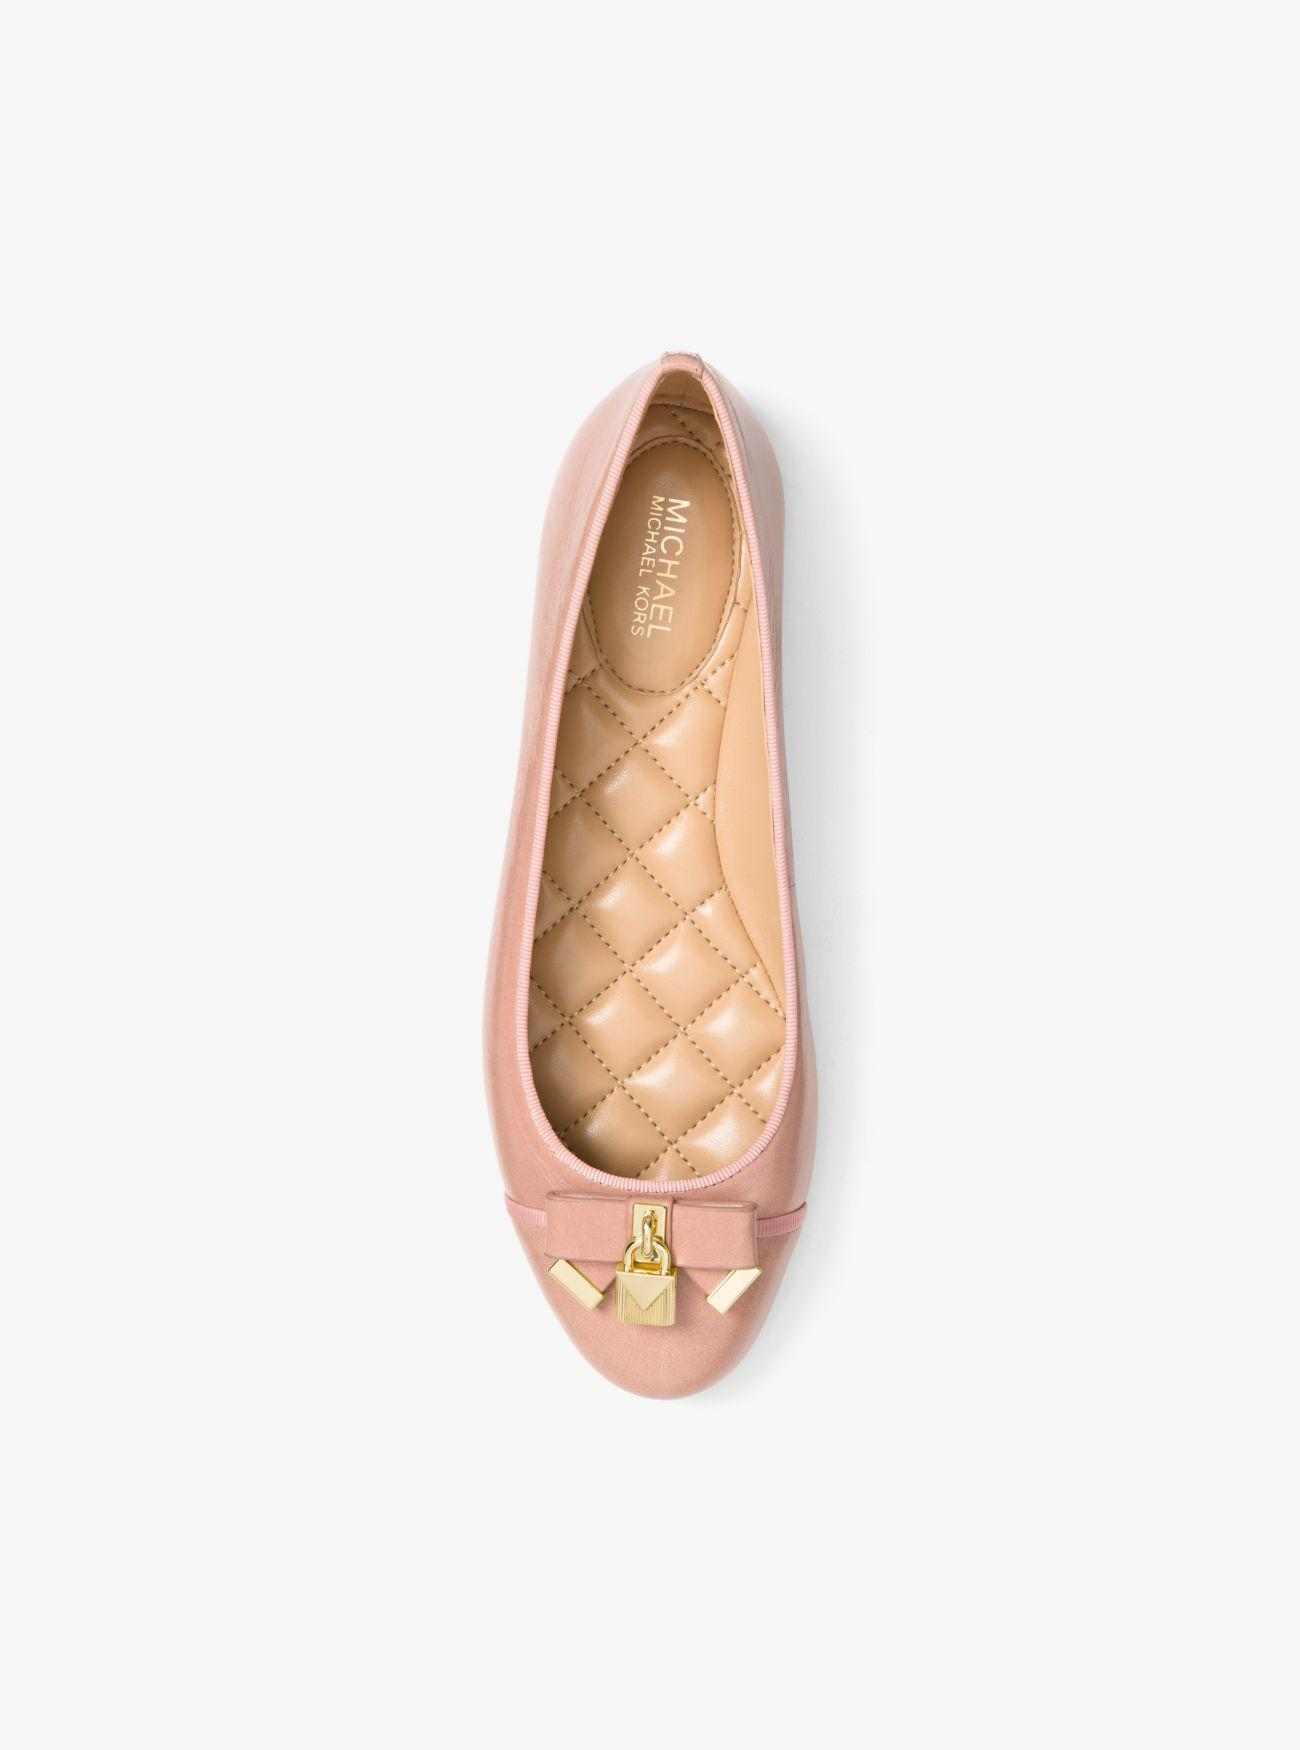 a498755e2515 Michael Kors Alice Leather Ballet Flat in Pink - Lyst